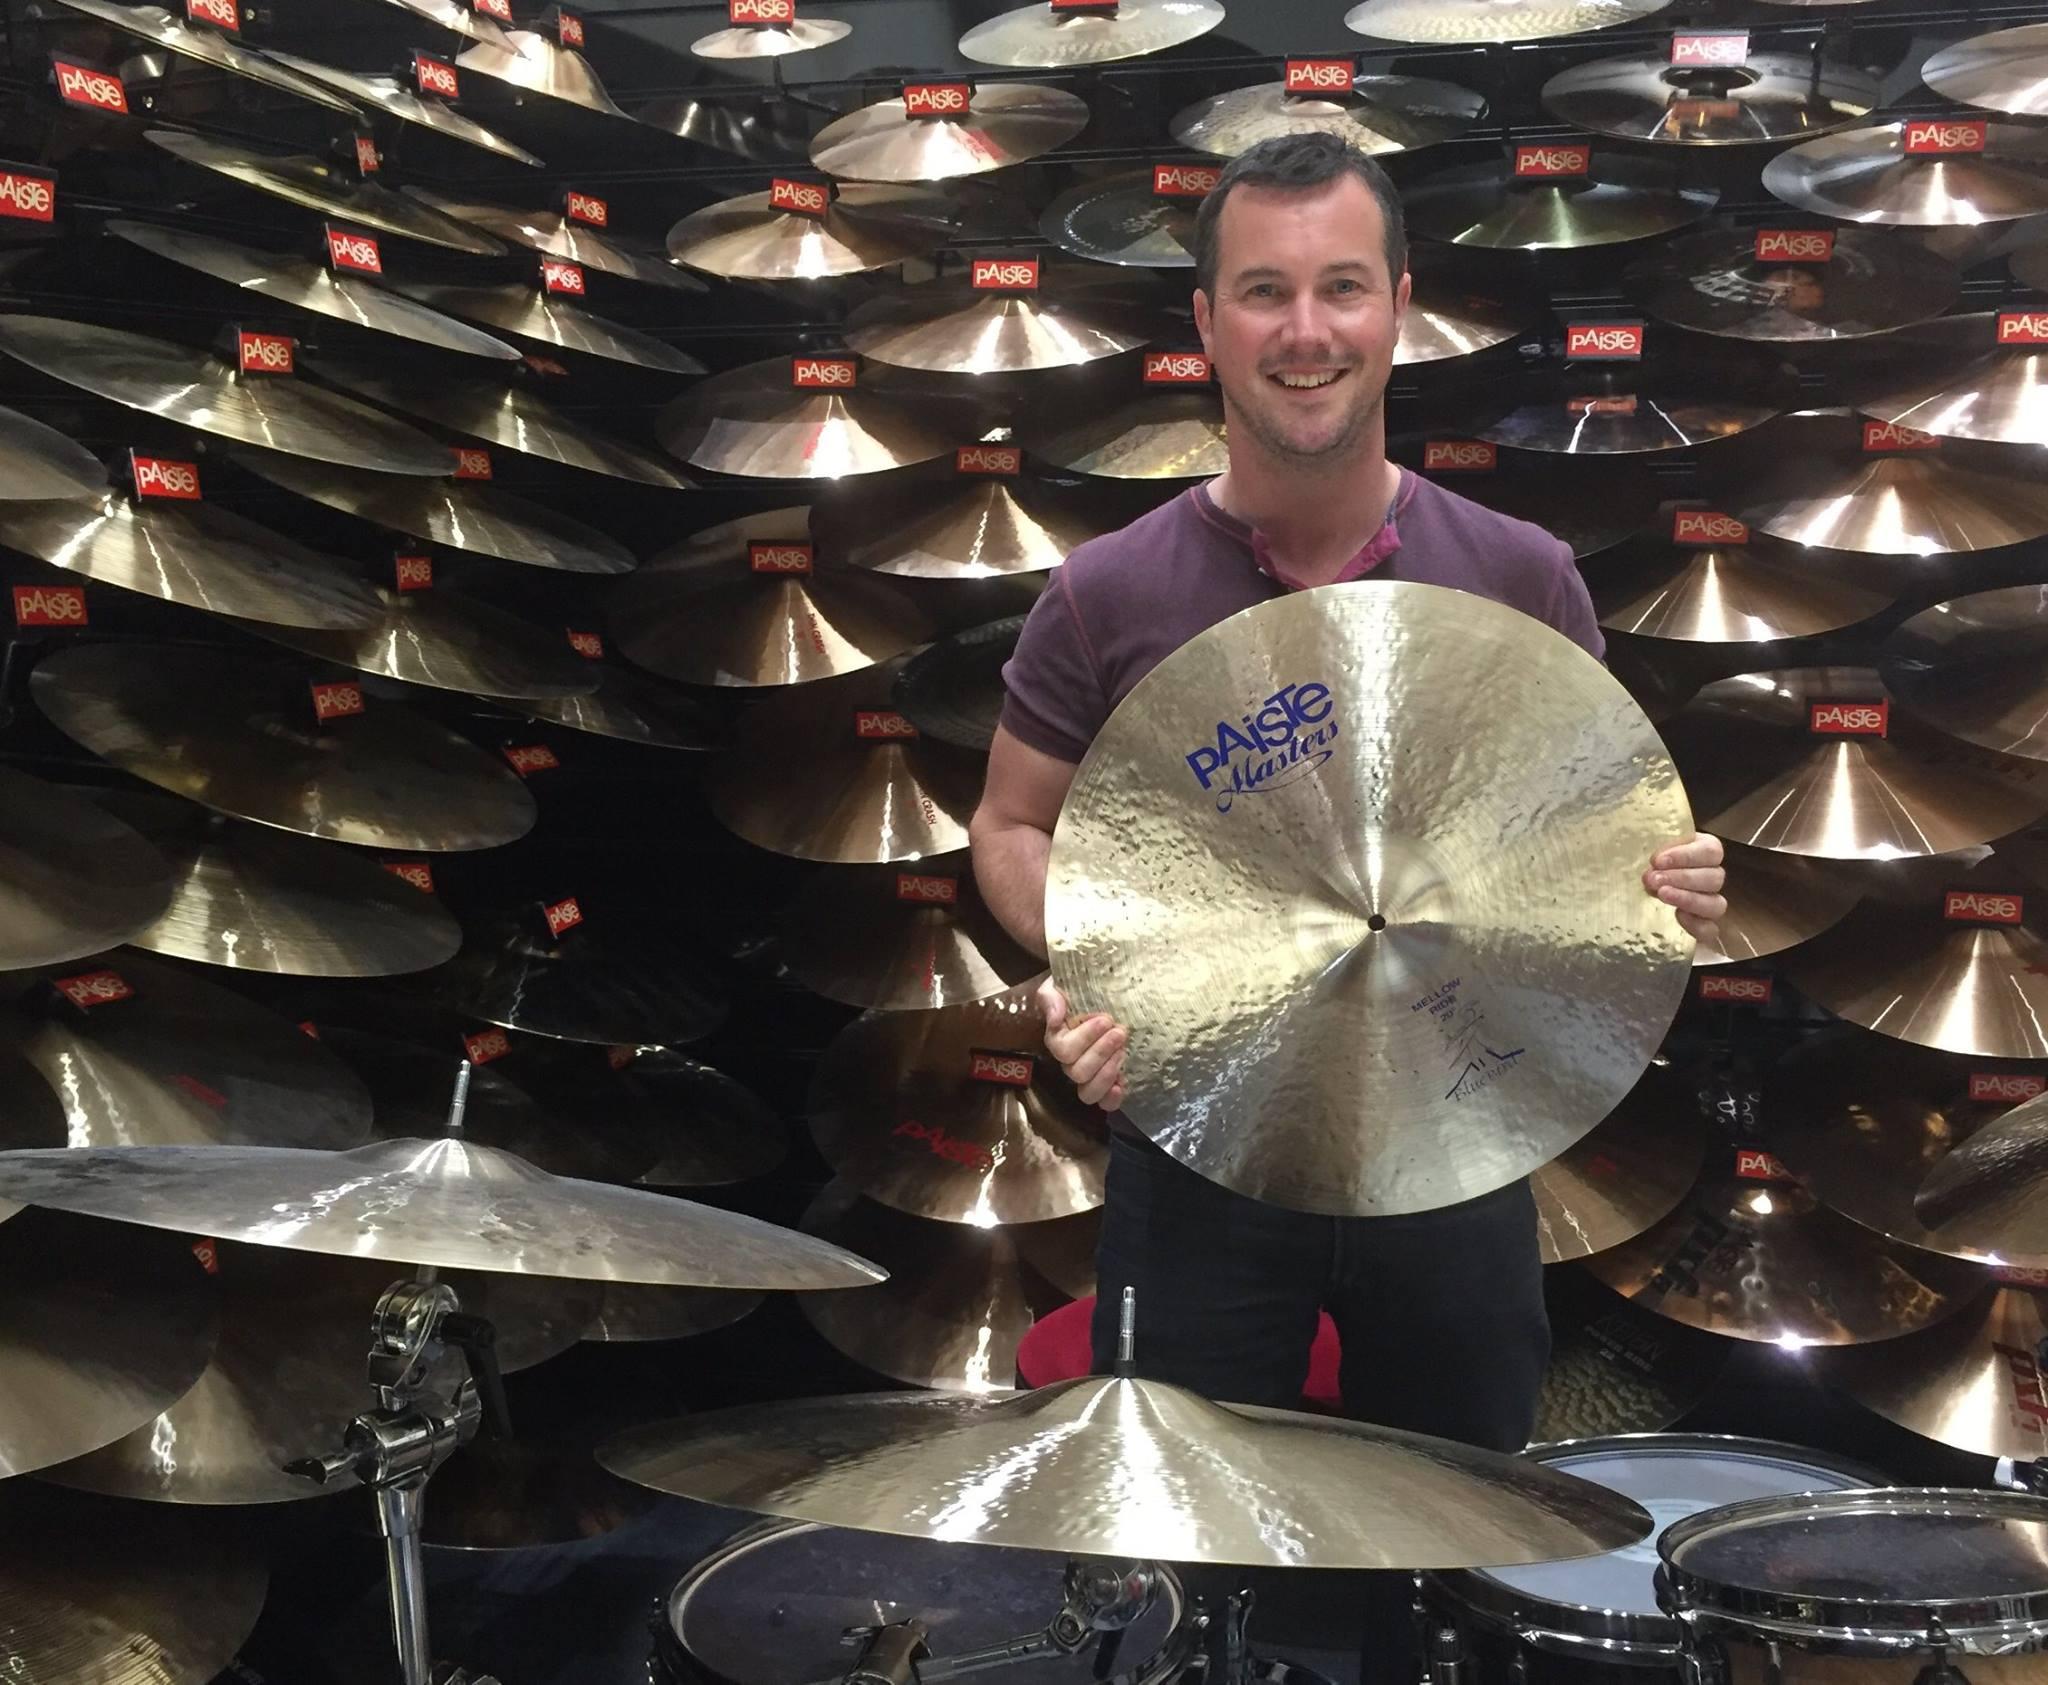 Proud day signing to Paiste and picking out a selection of cymbals at HQ in the UK